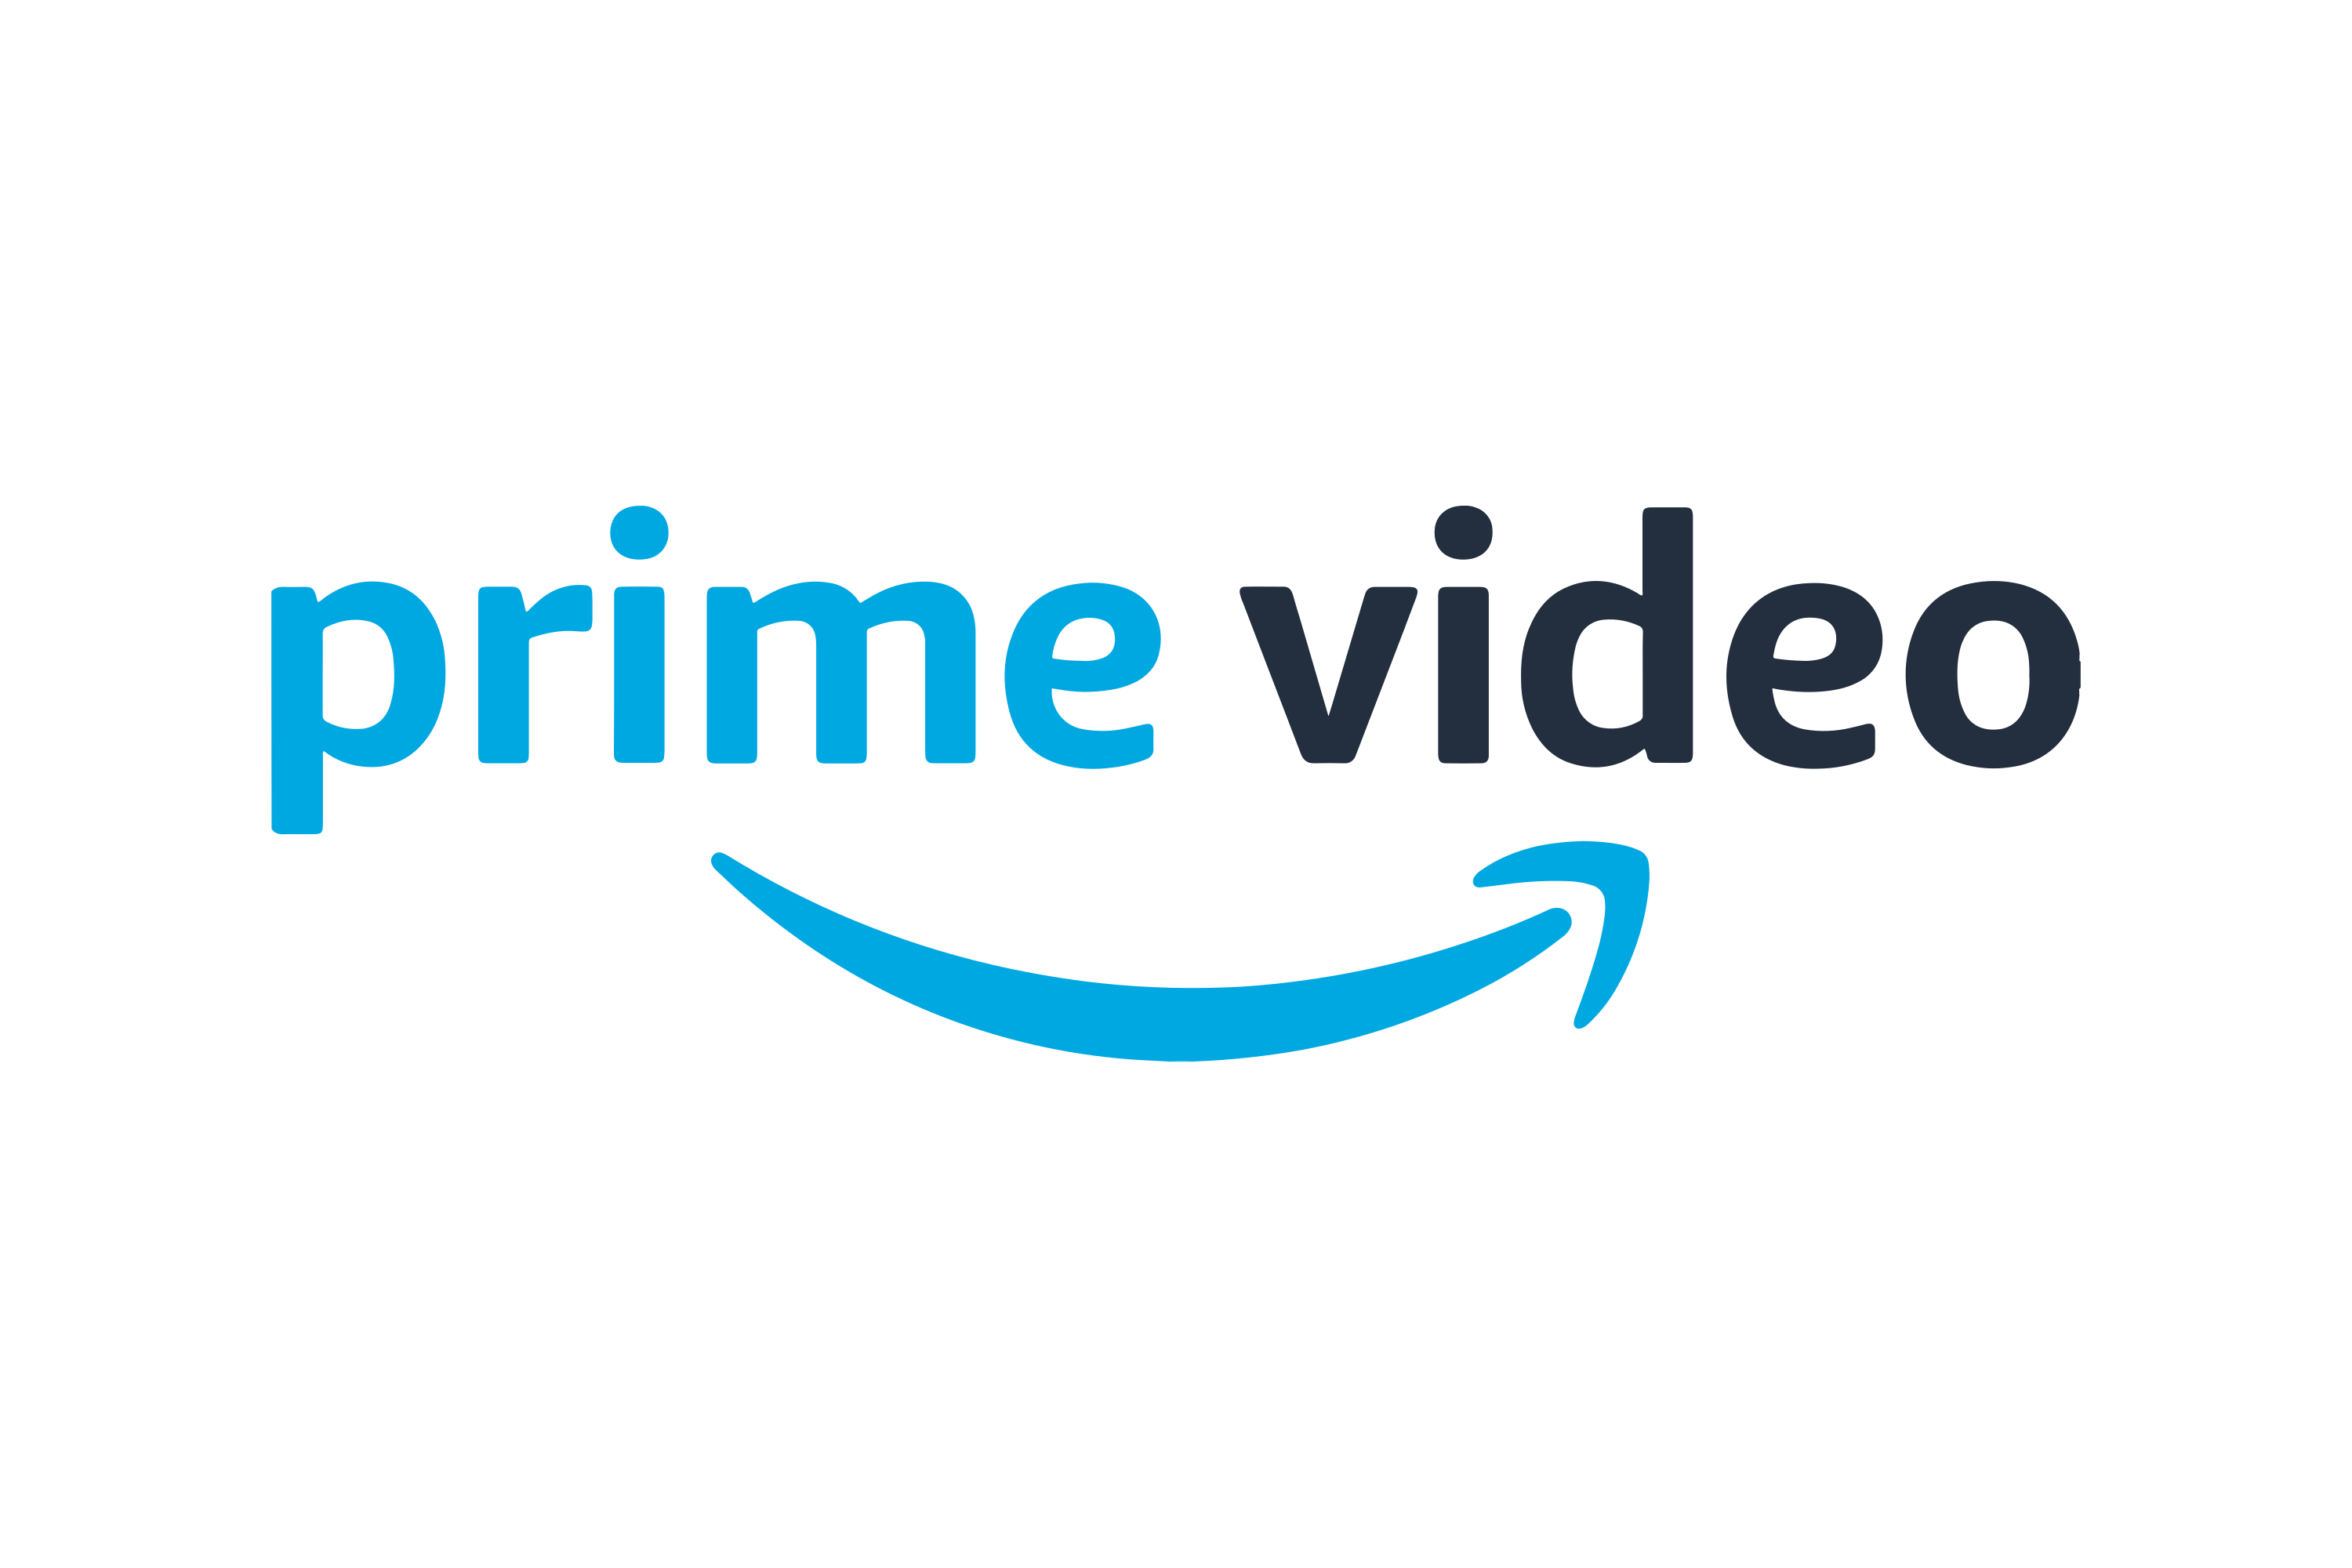 Download Amazon Video Amazon Prime Video Prime Video Logo In Svg Vector Or Png File Format Logo Wine